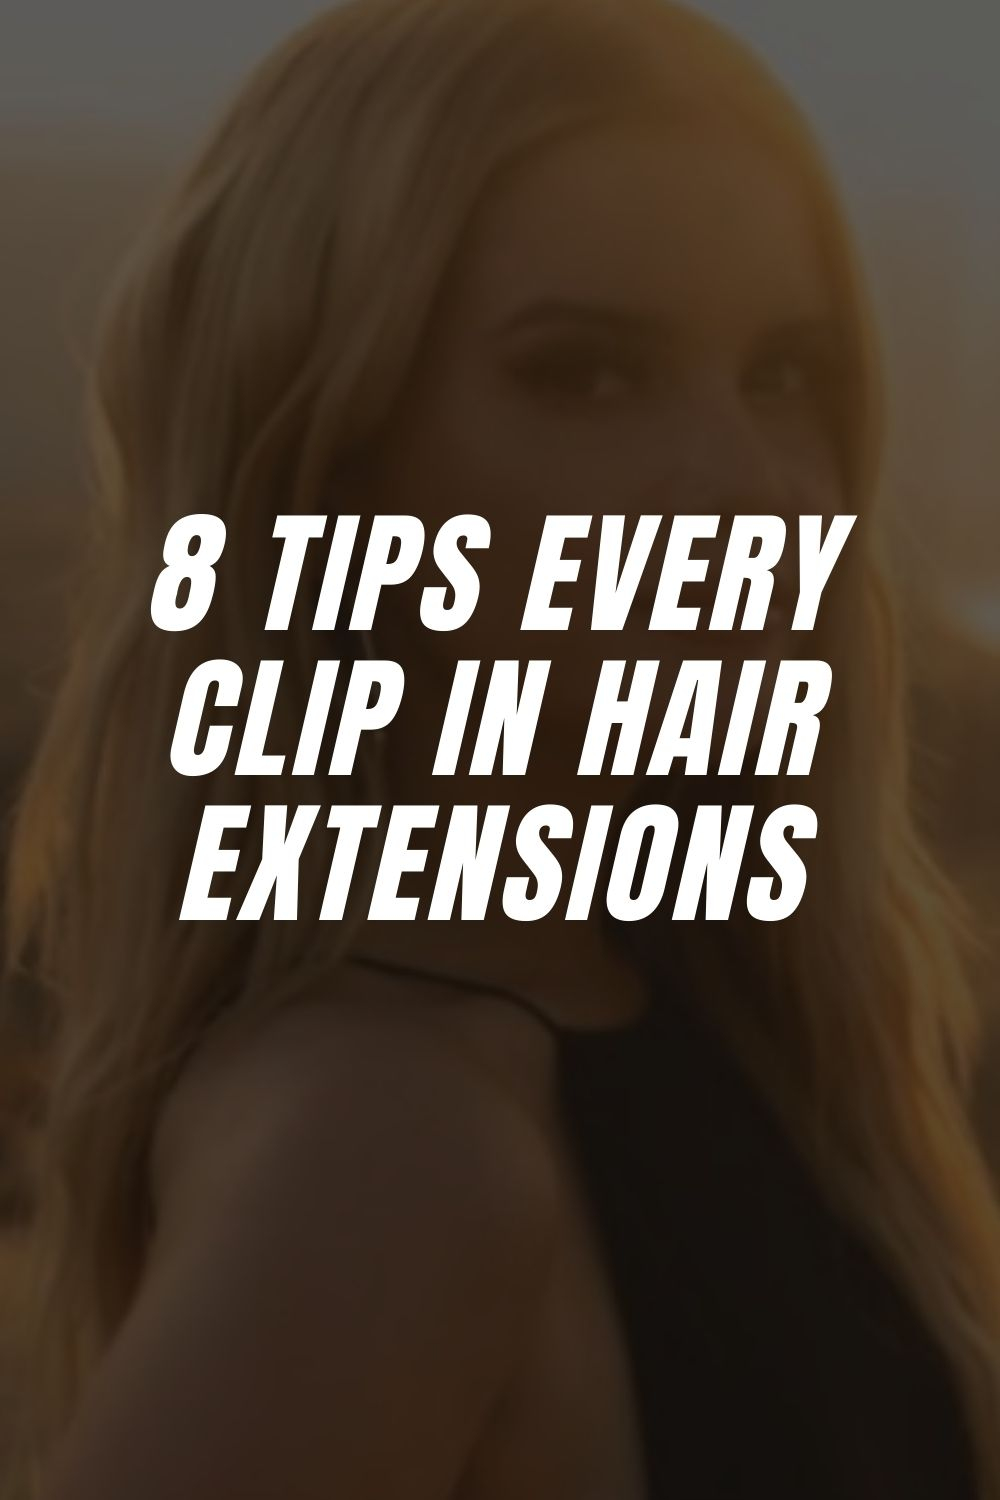 8 Tips Every Clip In Hair Extensions